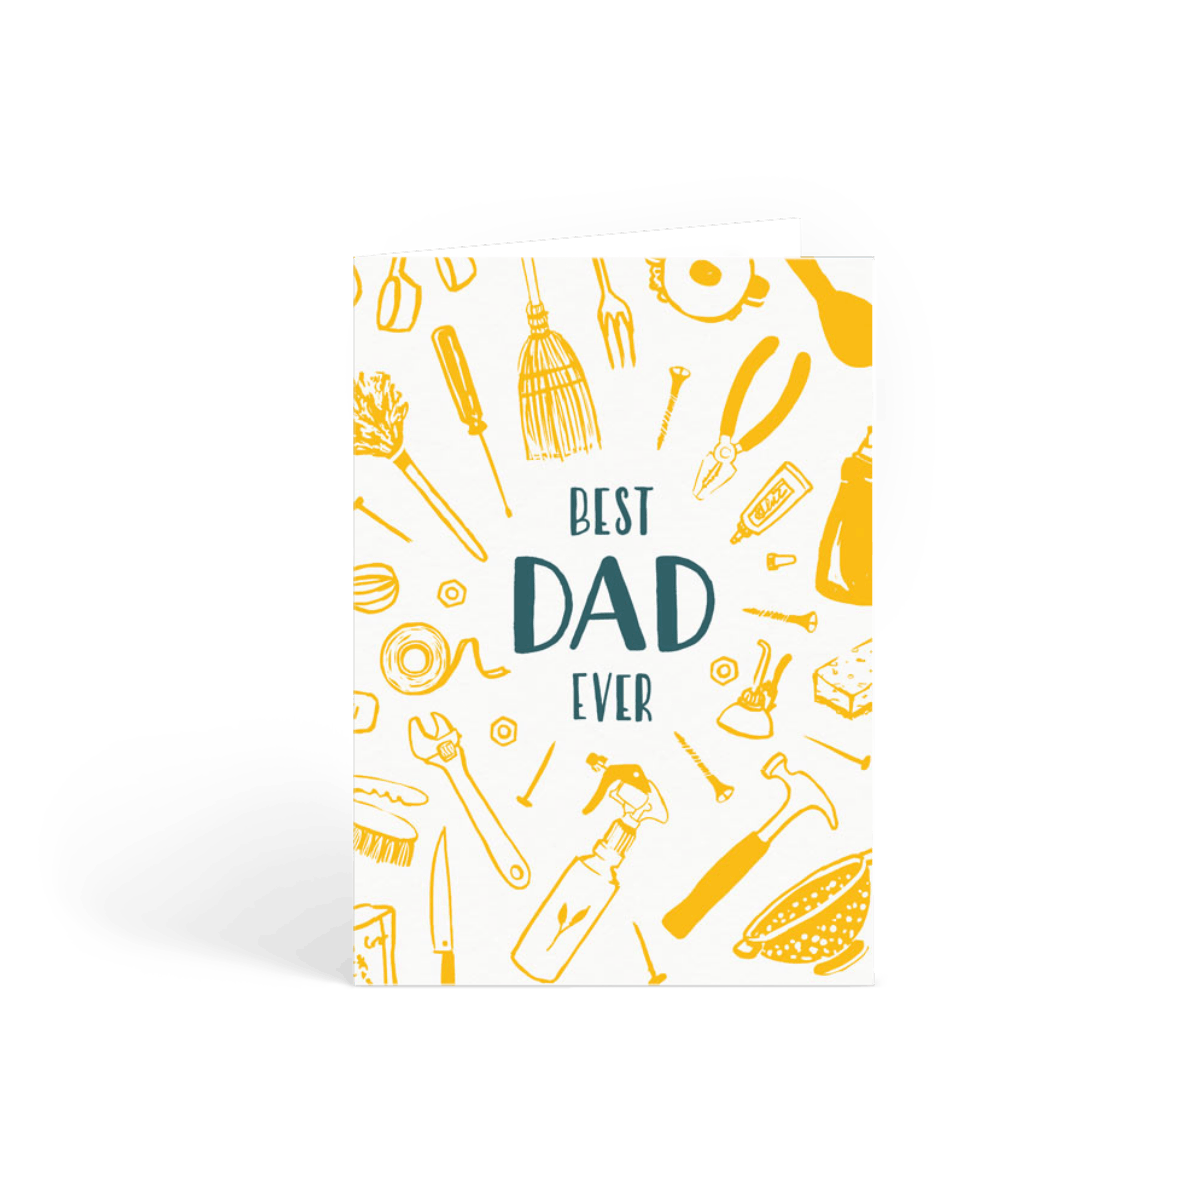 Https%3a%2f%2fwww.papier.com%2fproduct image%2f5066%2f2%2fbest dad ever 1318 front 1581453785.png?ixlib=rb 1.1